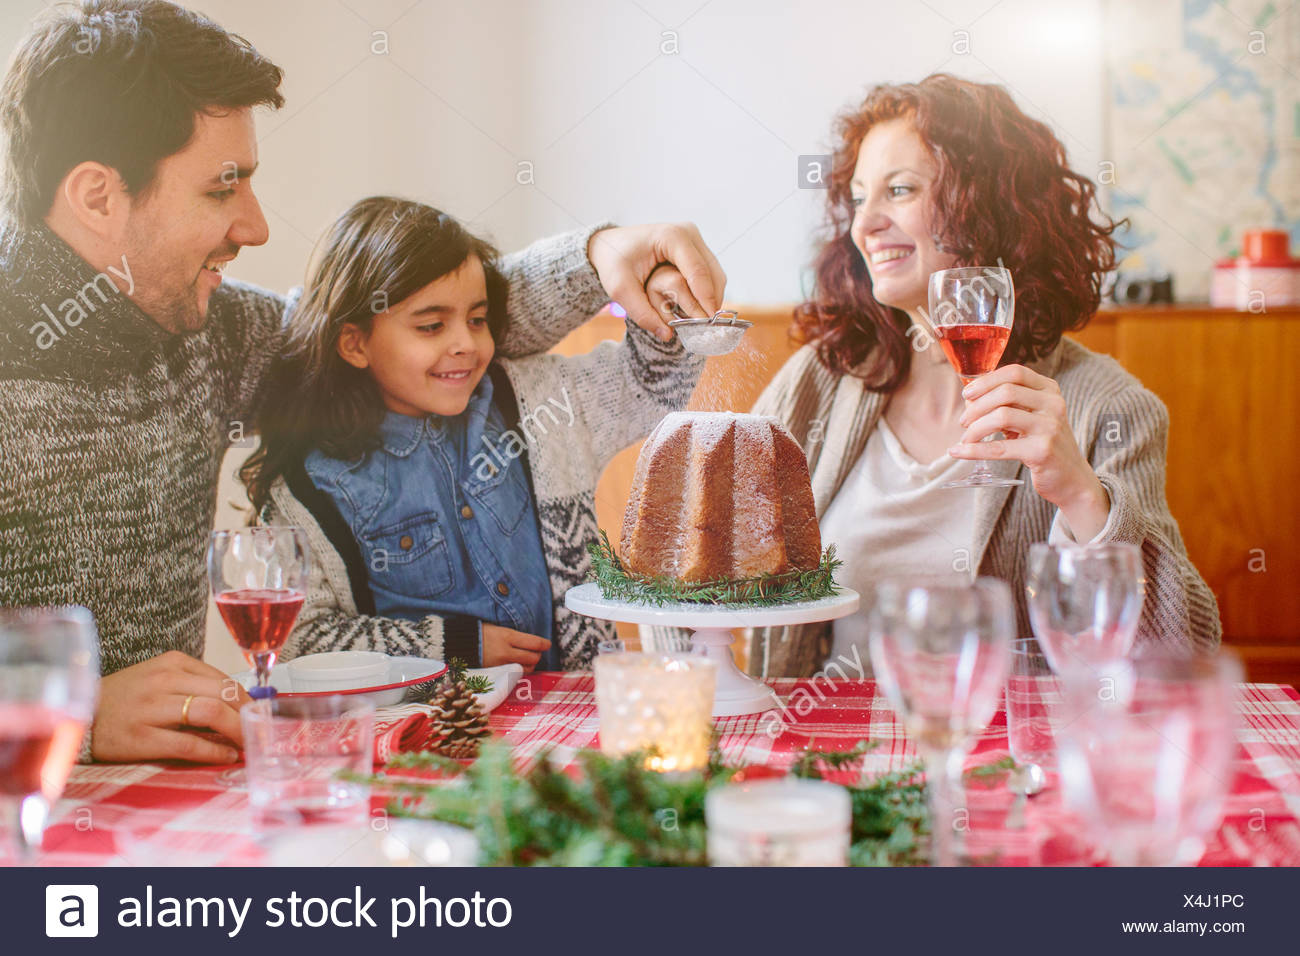 Woman serving desert at family Christmas party - Stock Image